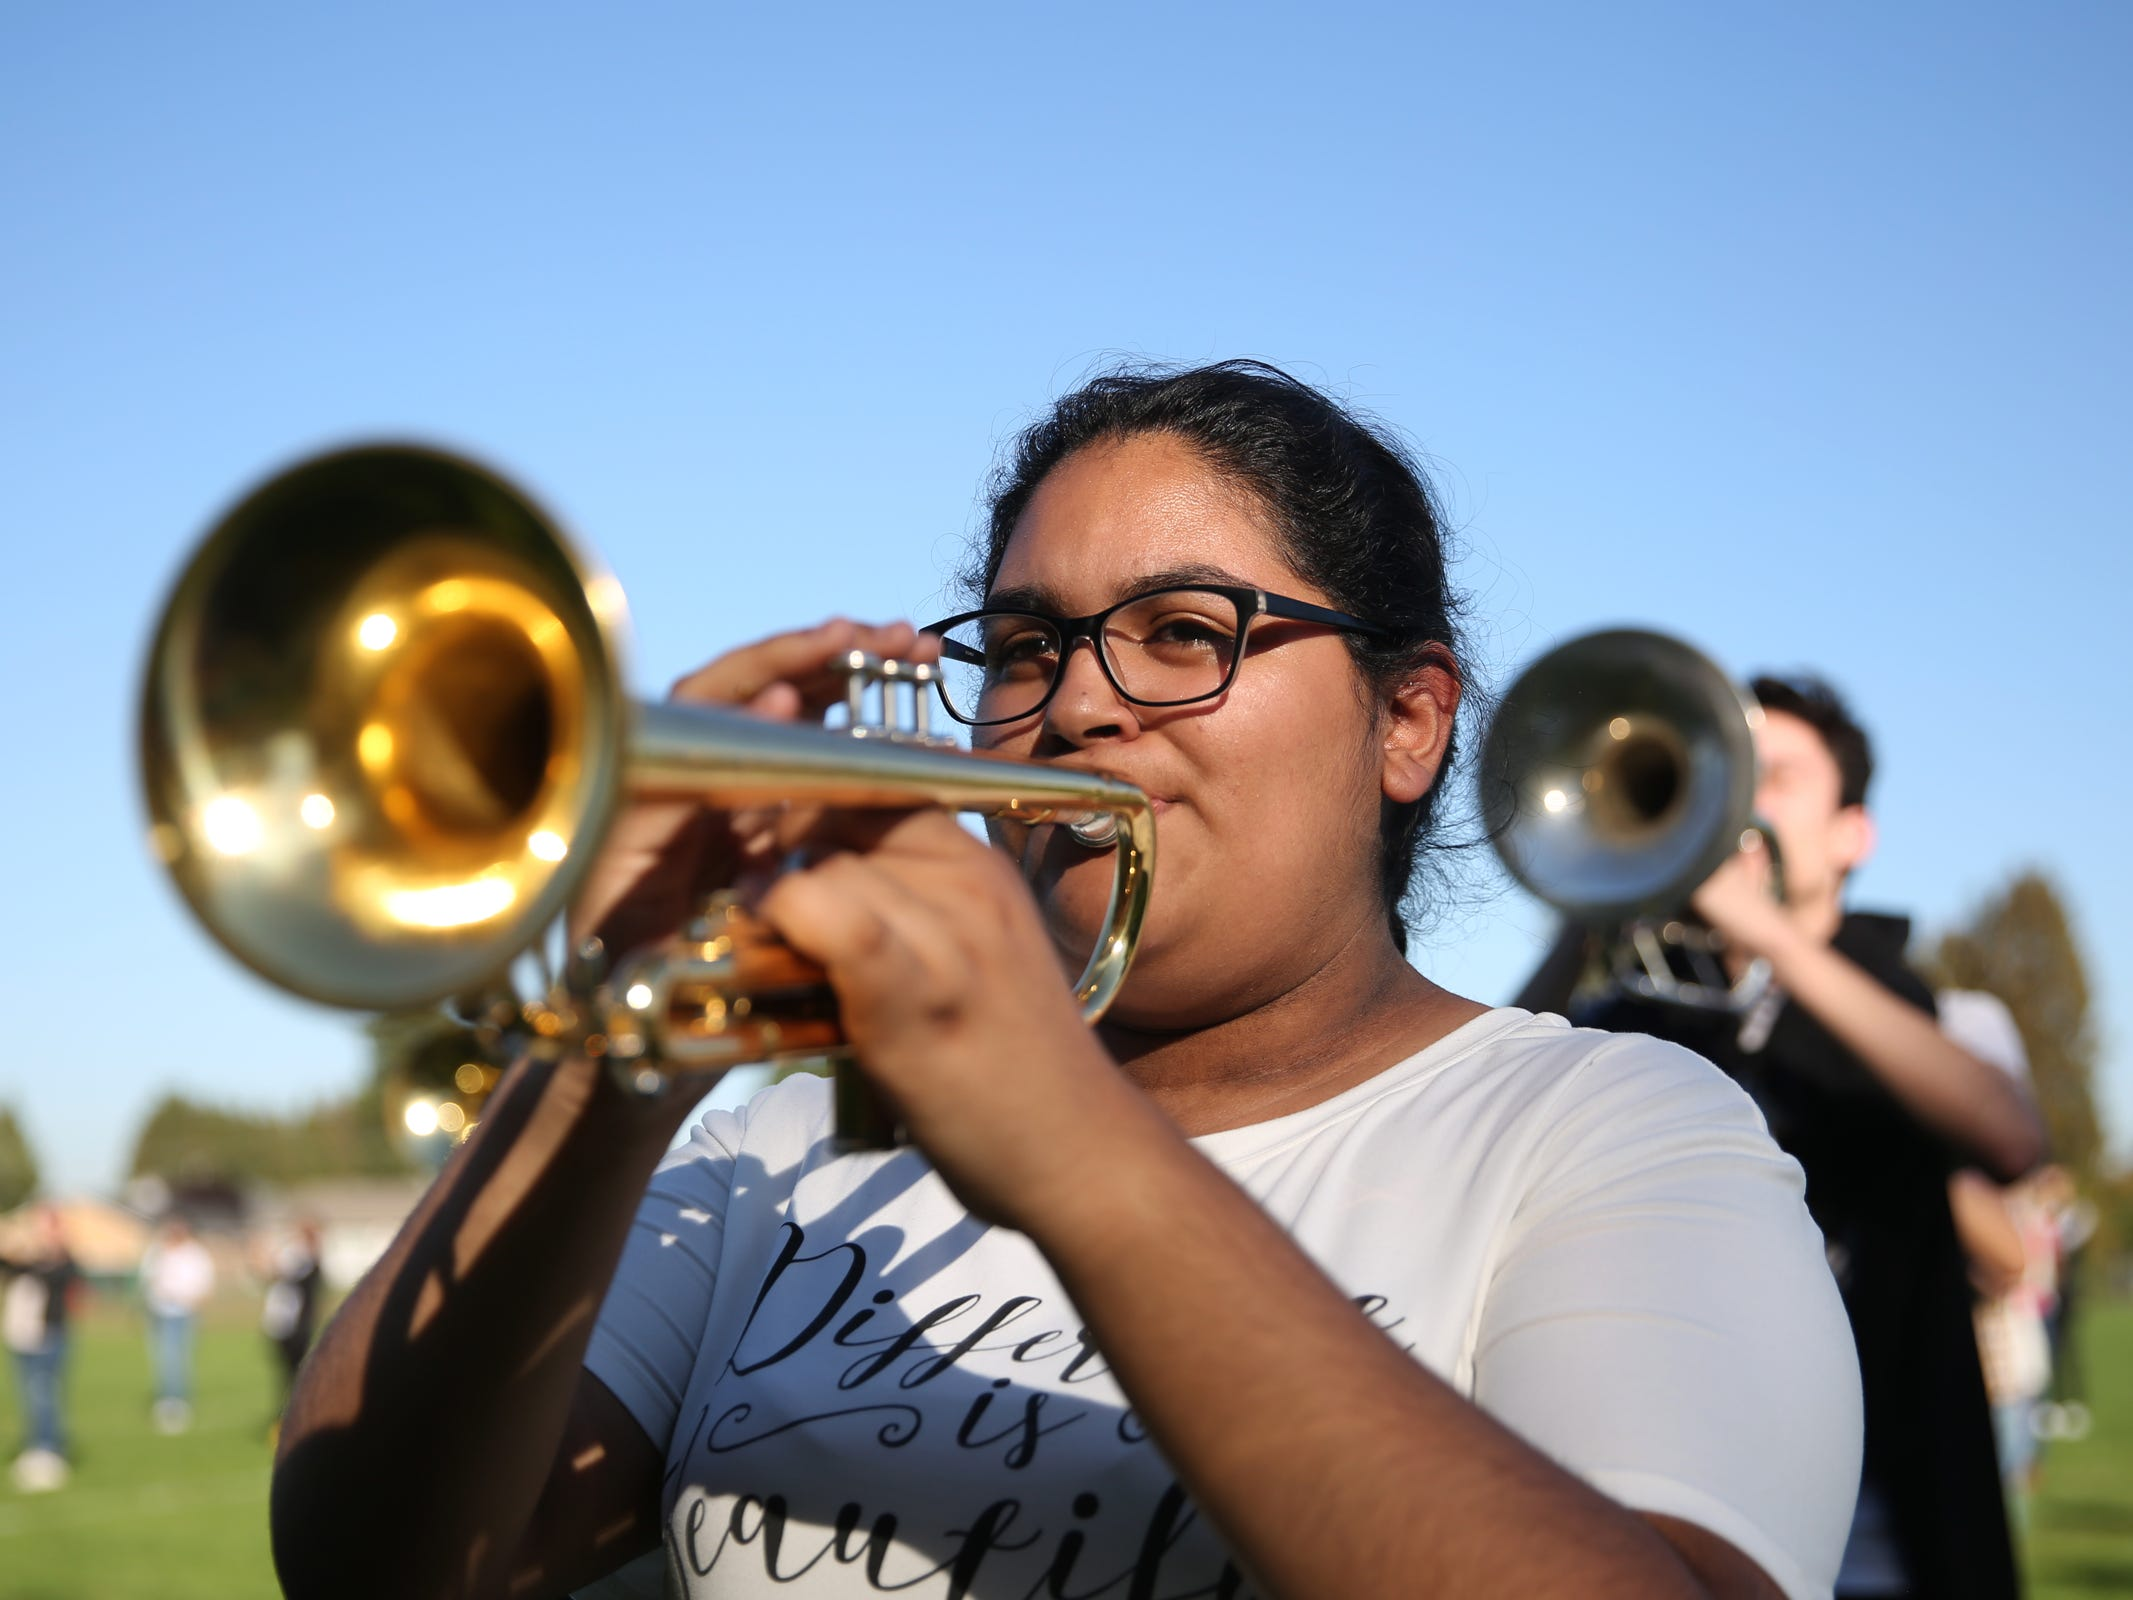 A McKay marching band trumpeter rehearses at McKay High School in Salem on Thursday, Sep. 27, 2018.